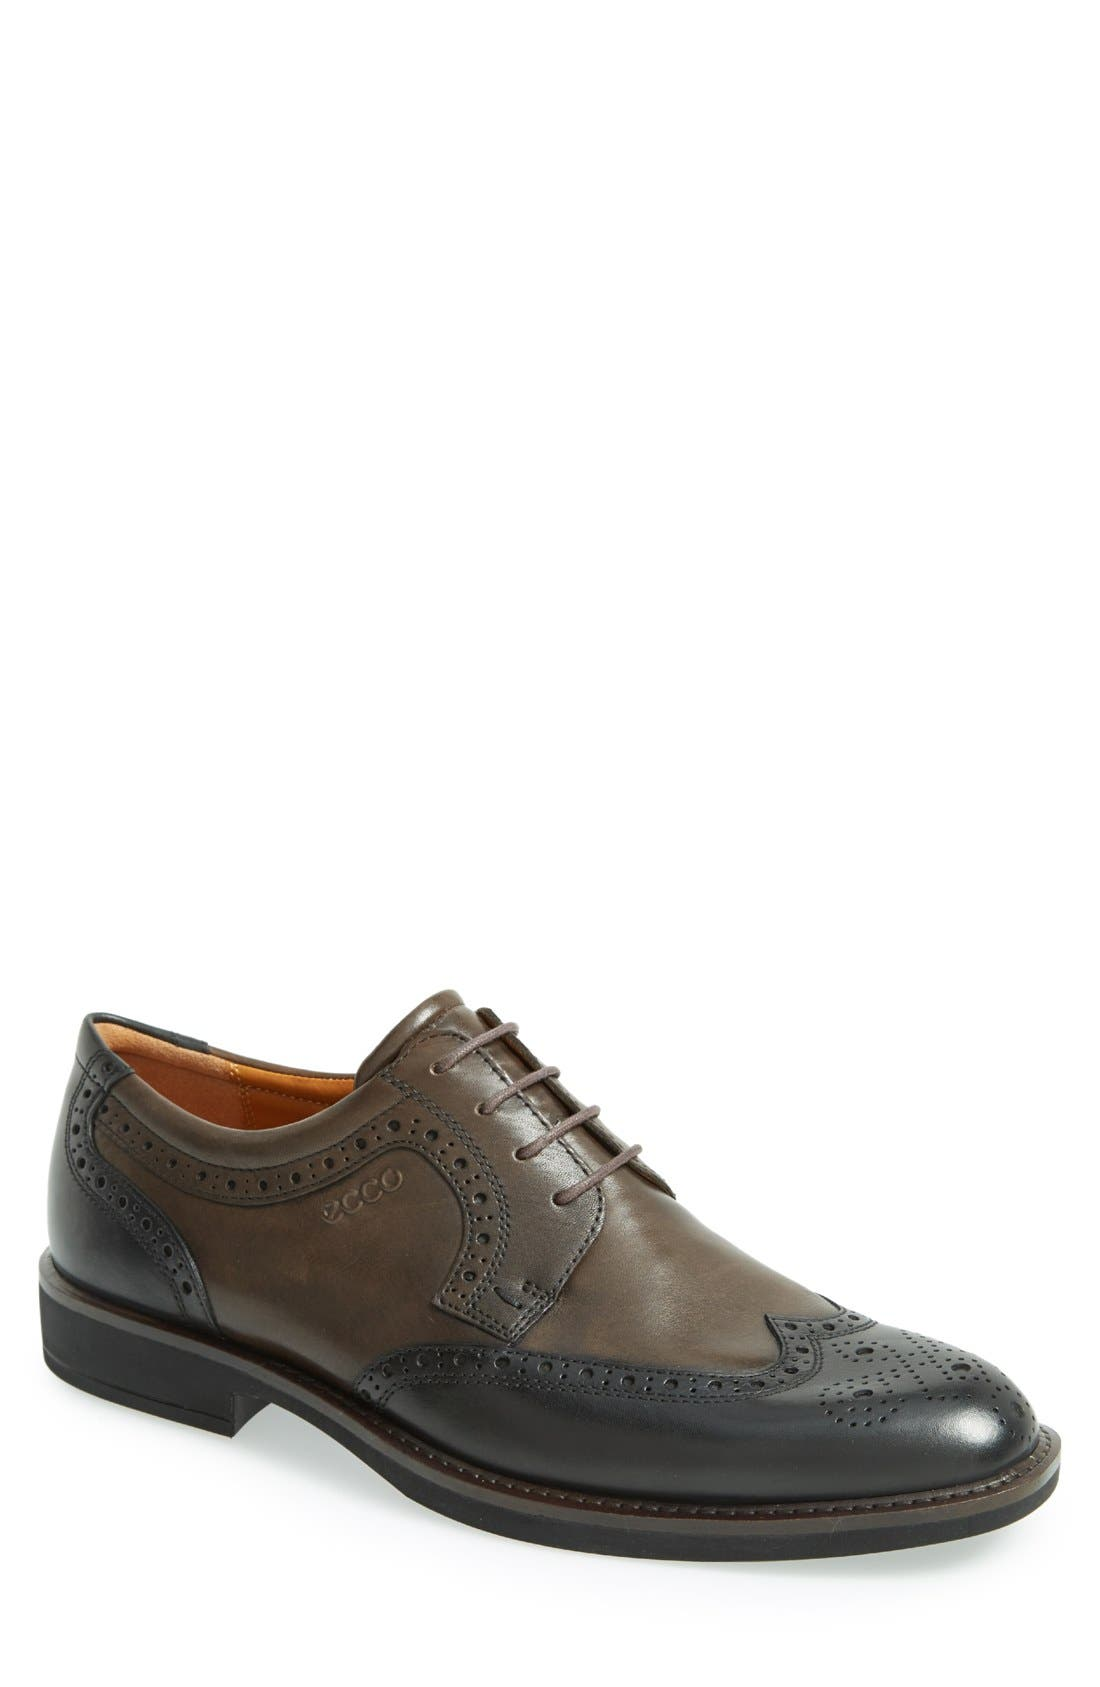 Alternate Image 1 Selected - ECCO 'Biarritz' Oxford (Online Only)